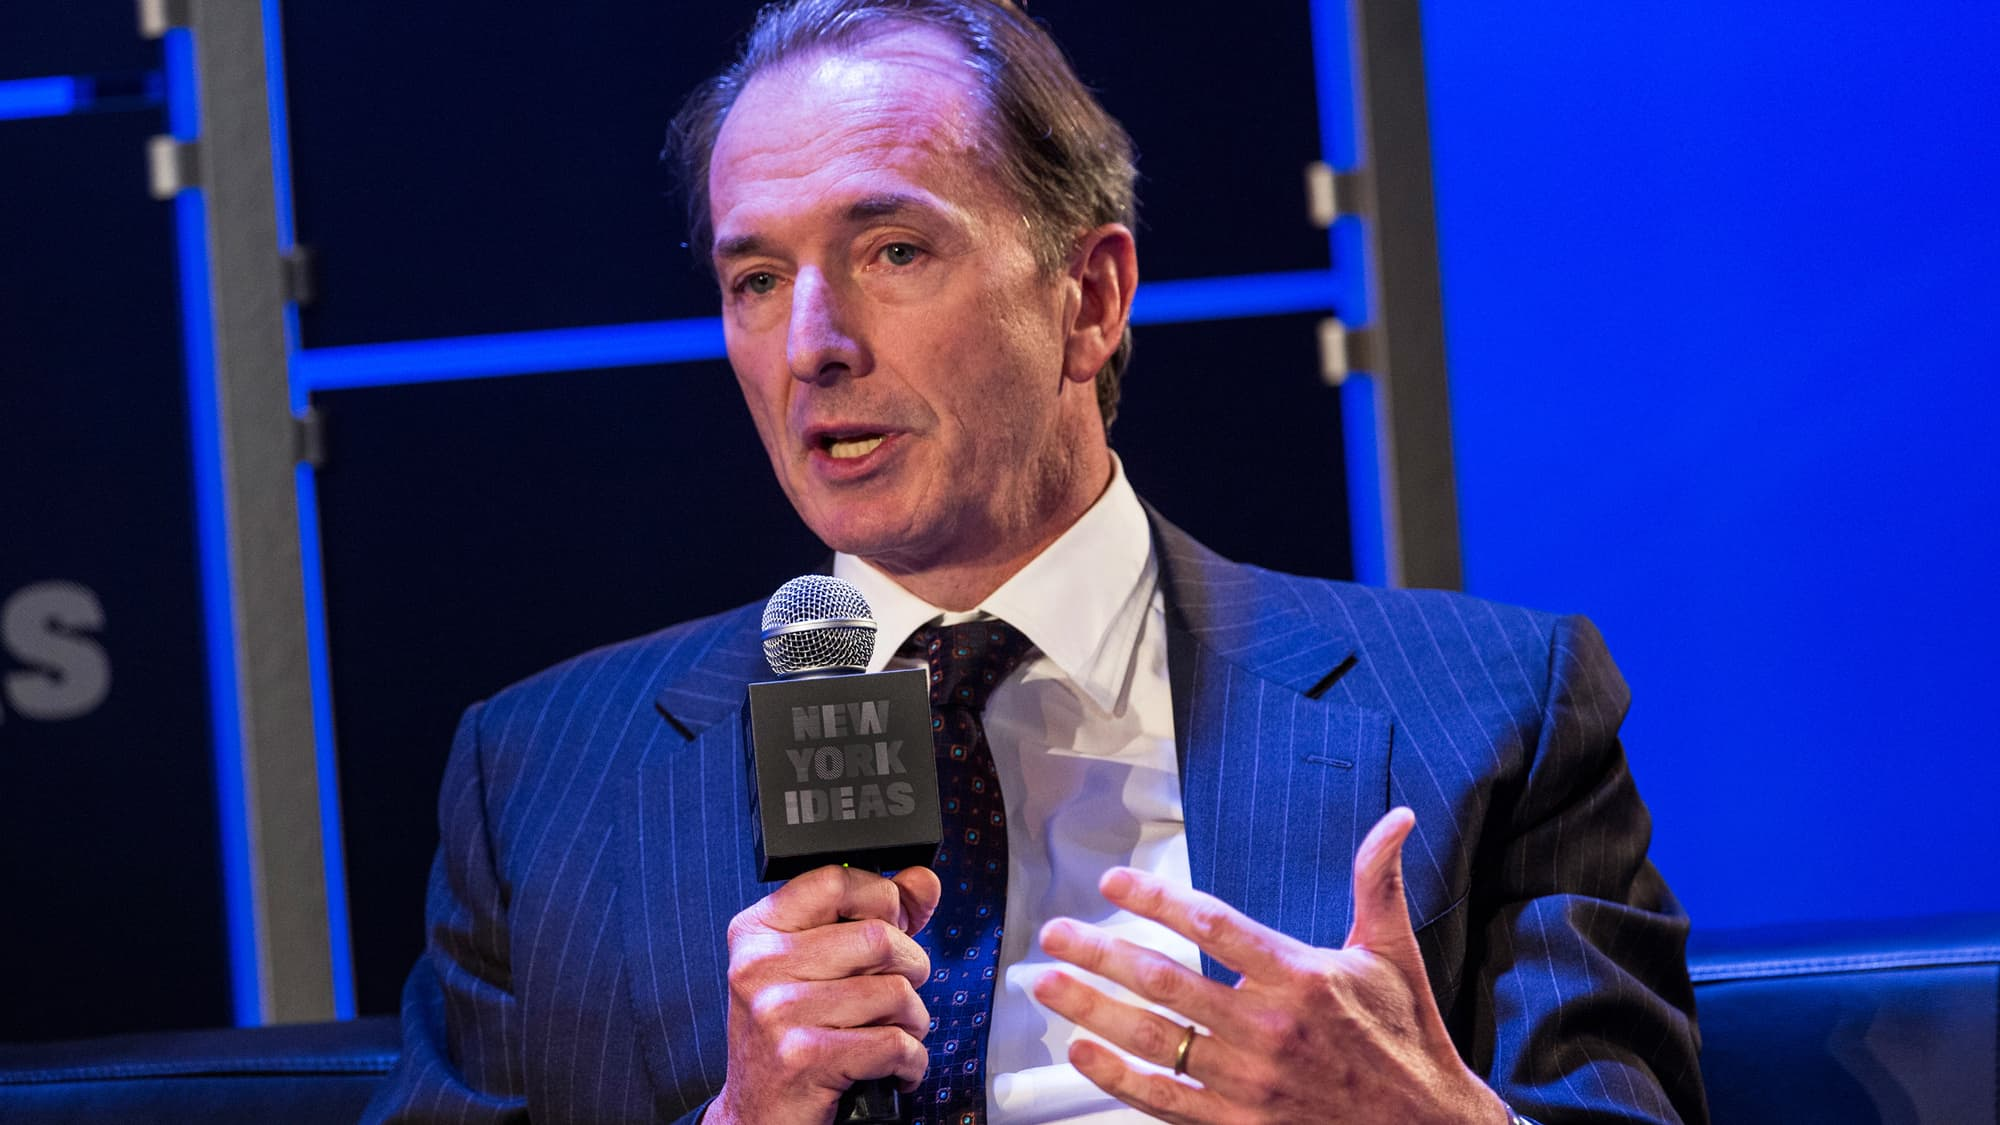 Morgan Stanley eyes compensation cuts for financial advisers